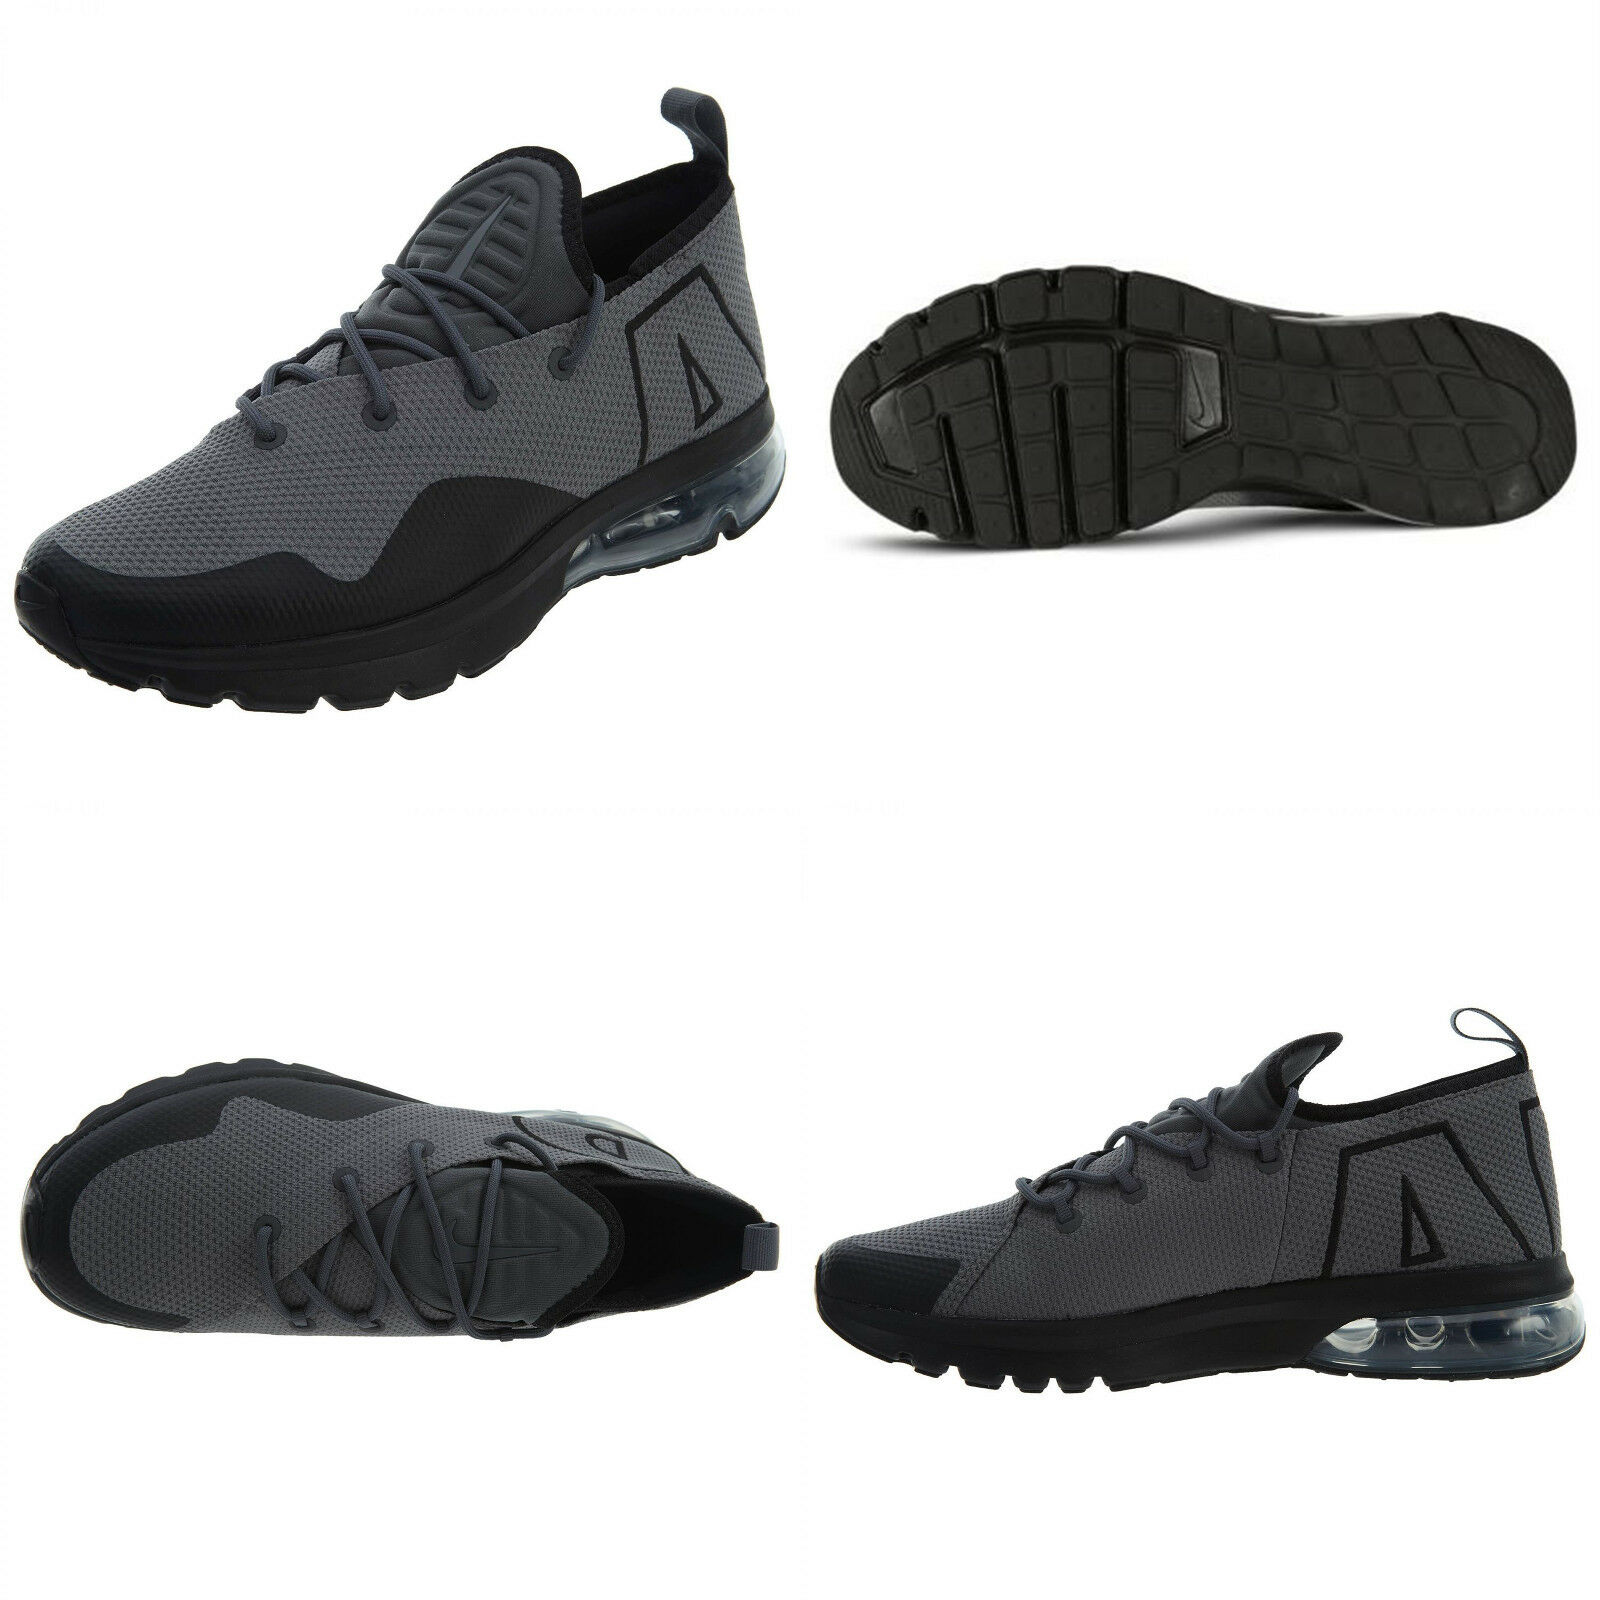 NIKE AIR MAX FLAIR 50 (AA3824-003),Men's Sportwear Running shoes.New with Box